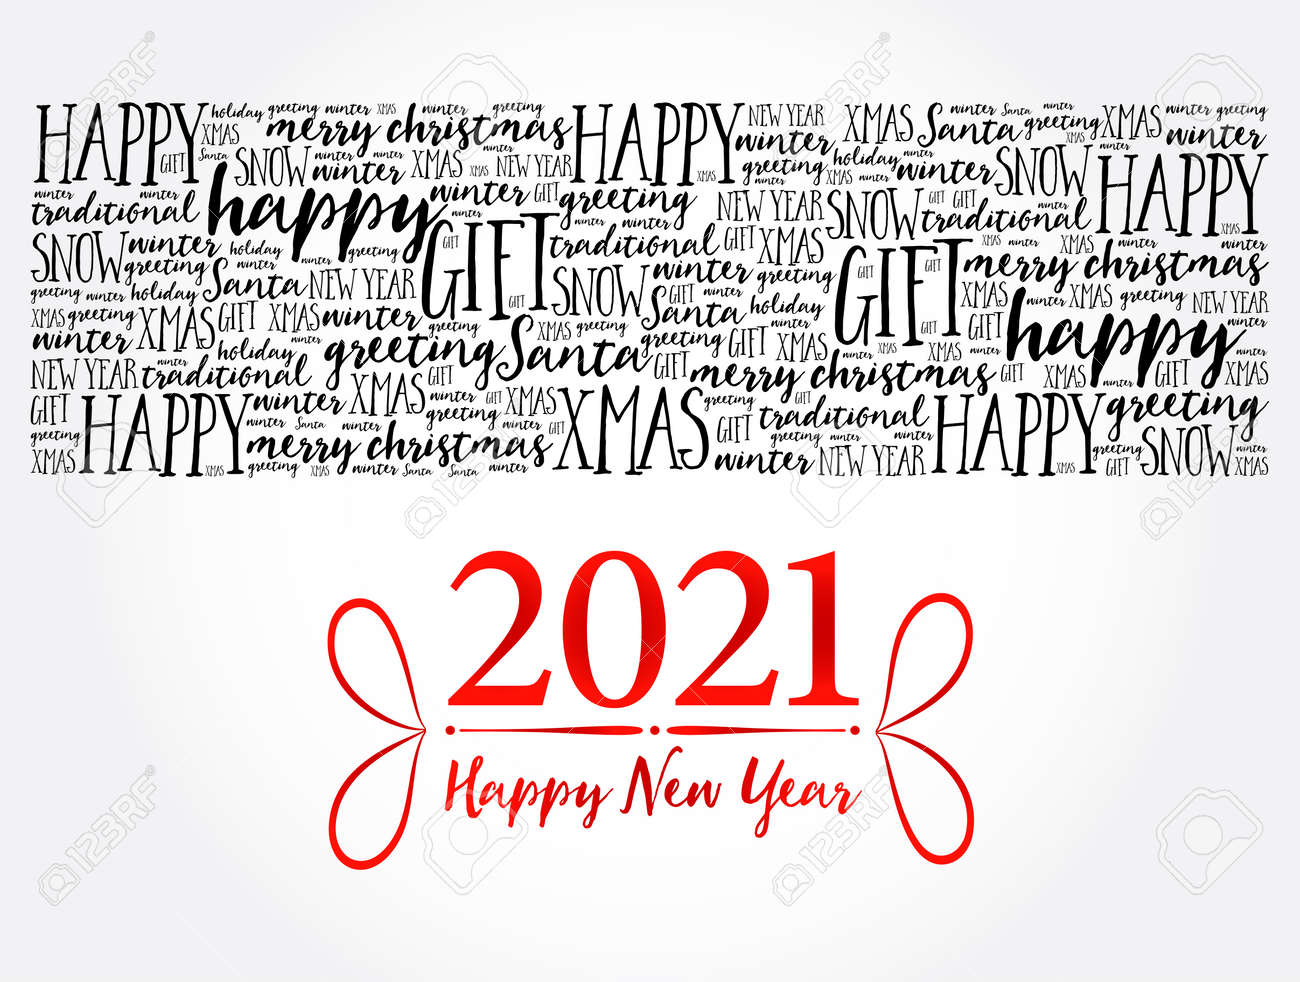 2021 Happy New Year. Christmas background word cloud, holidays lettering collage - 159750698